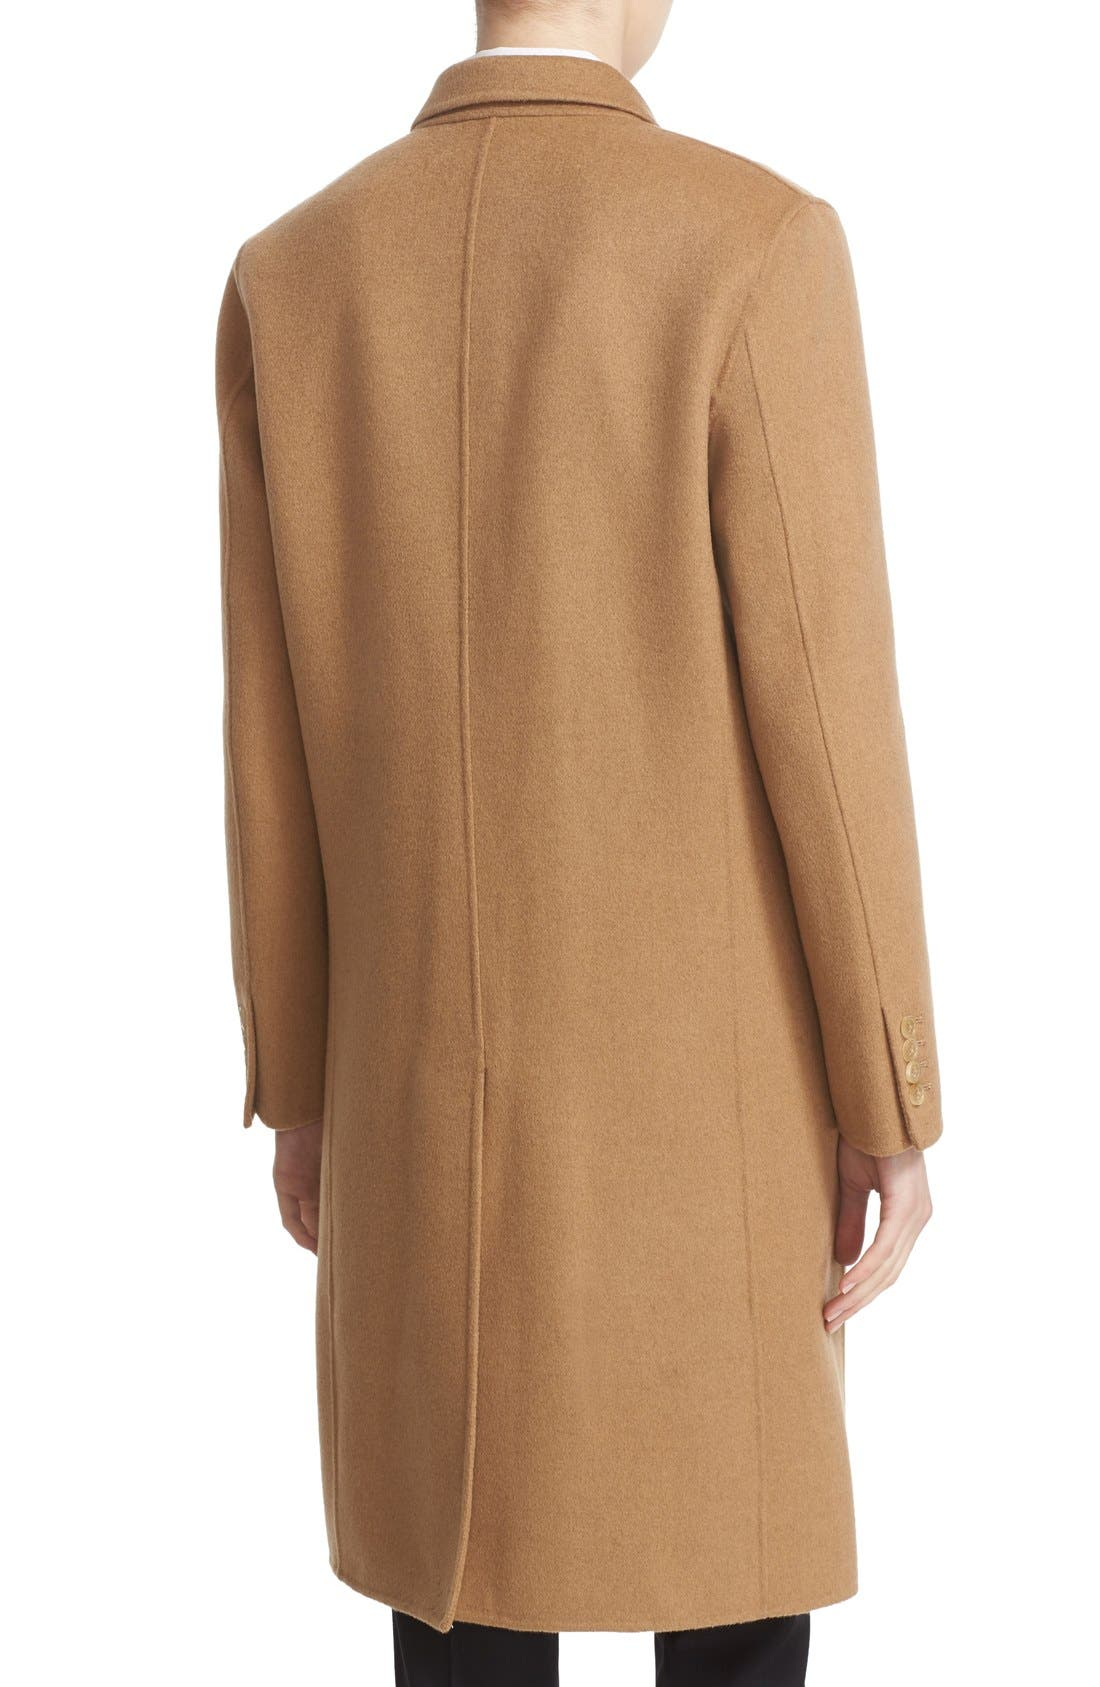 Alternate Image 2  - JOSEPH 'Caversham' Double Face Wool & Cashmere Coat